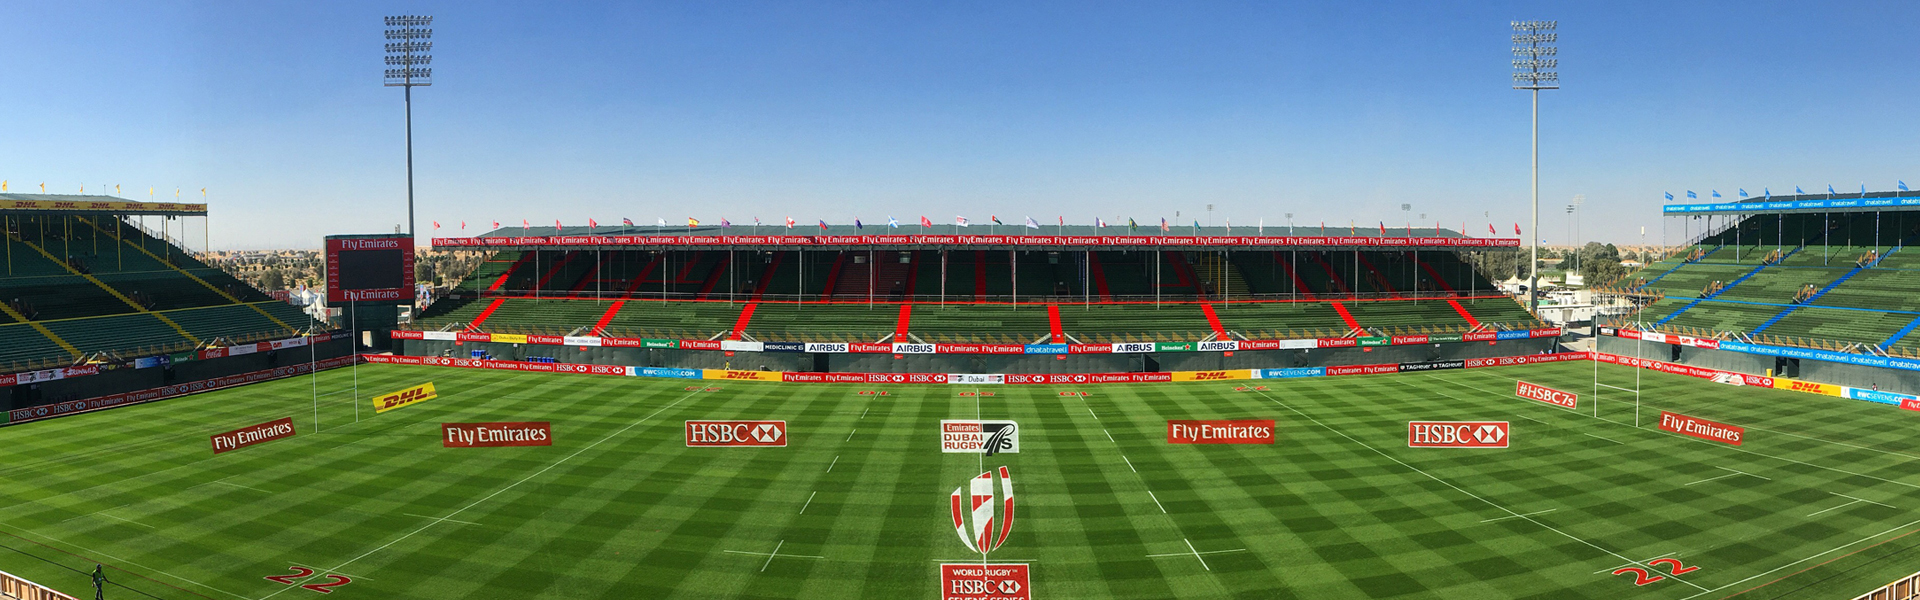 Emirates 7s pitch built by desert group